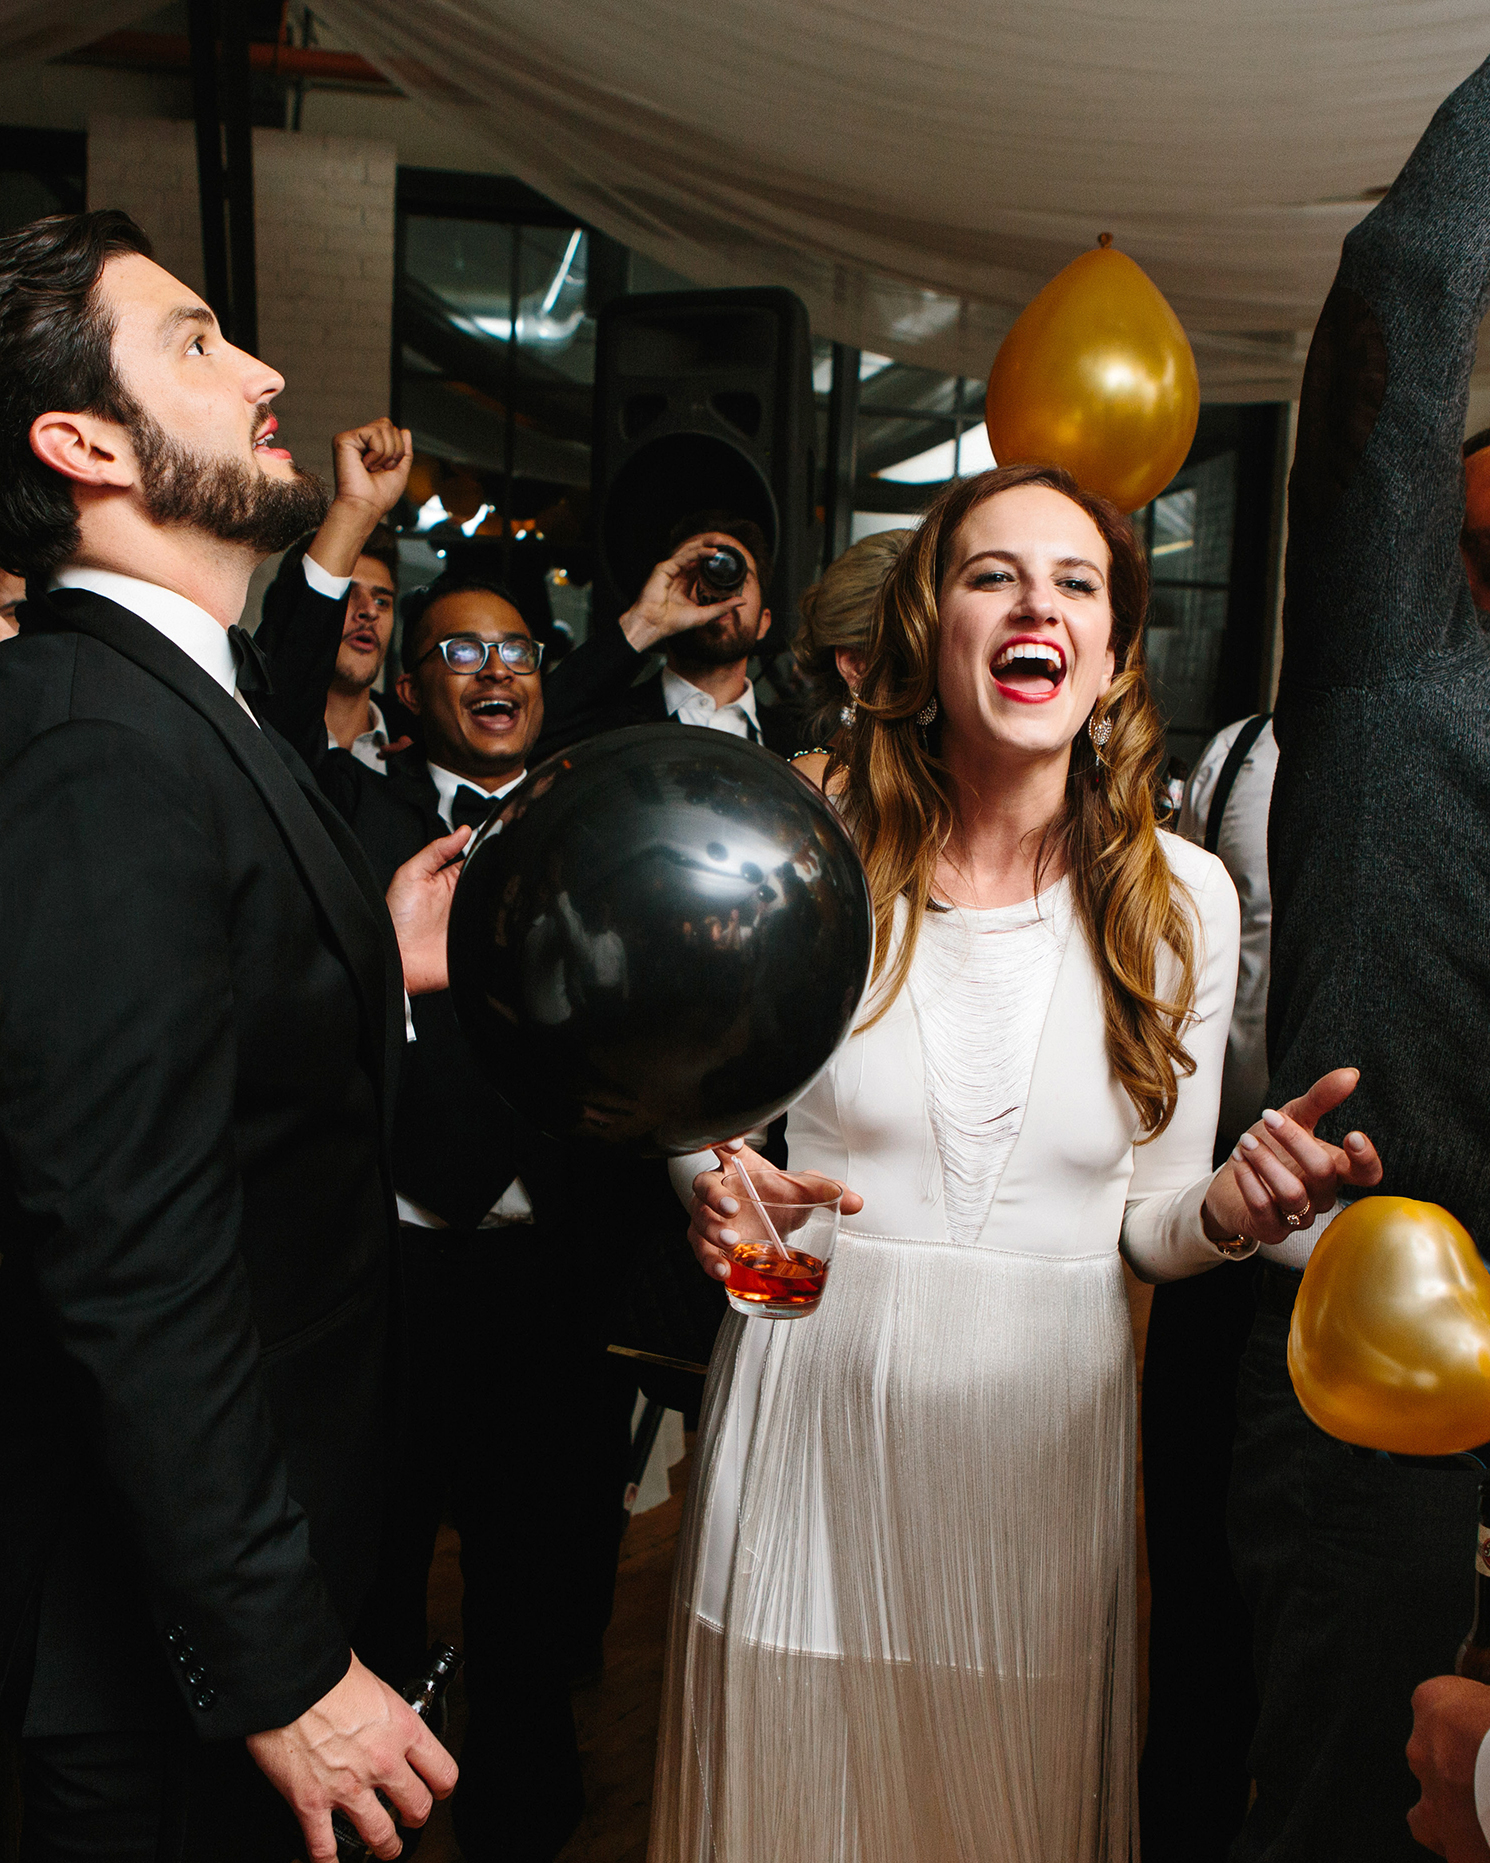 joanna jay wedding balloon drop